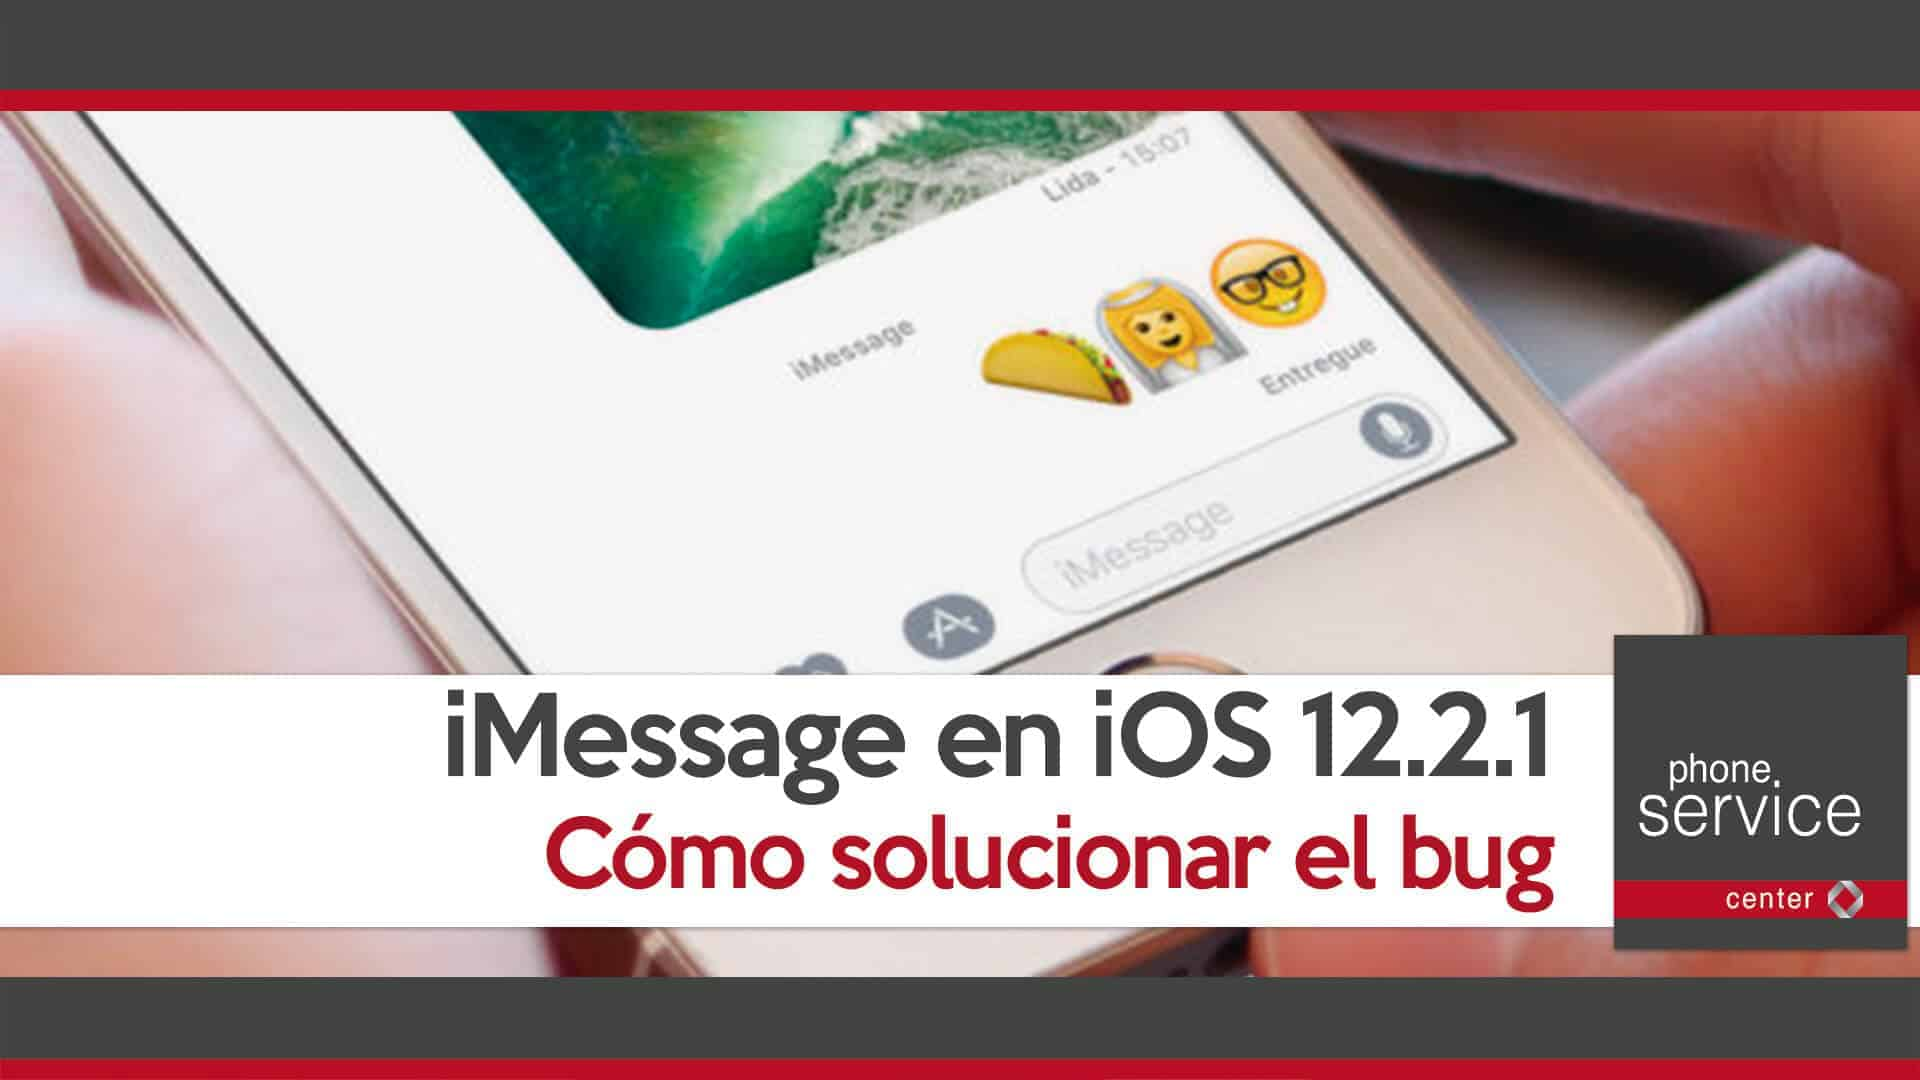 imessage-en-ios-12-2-1